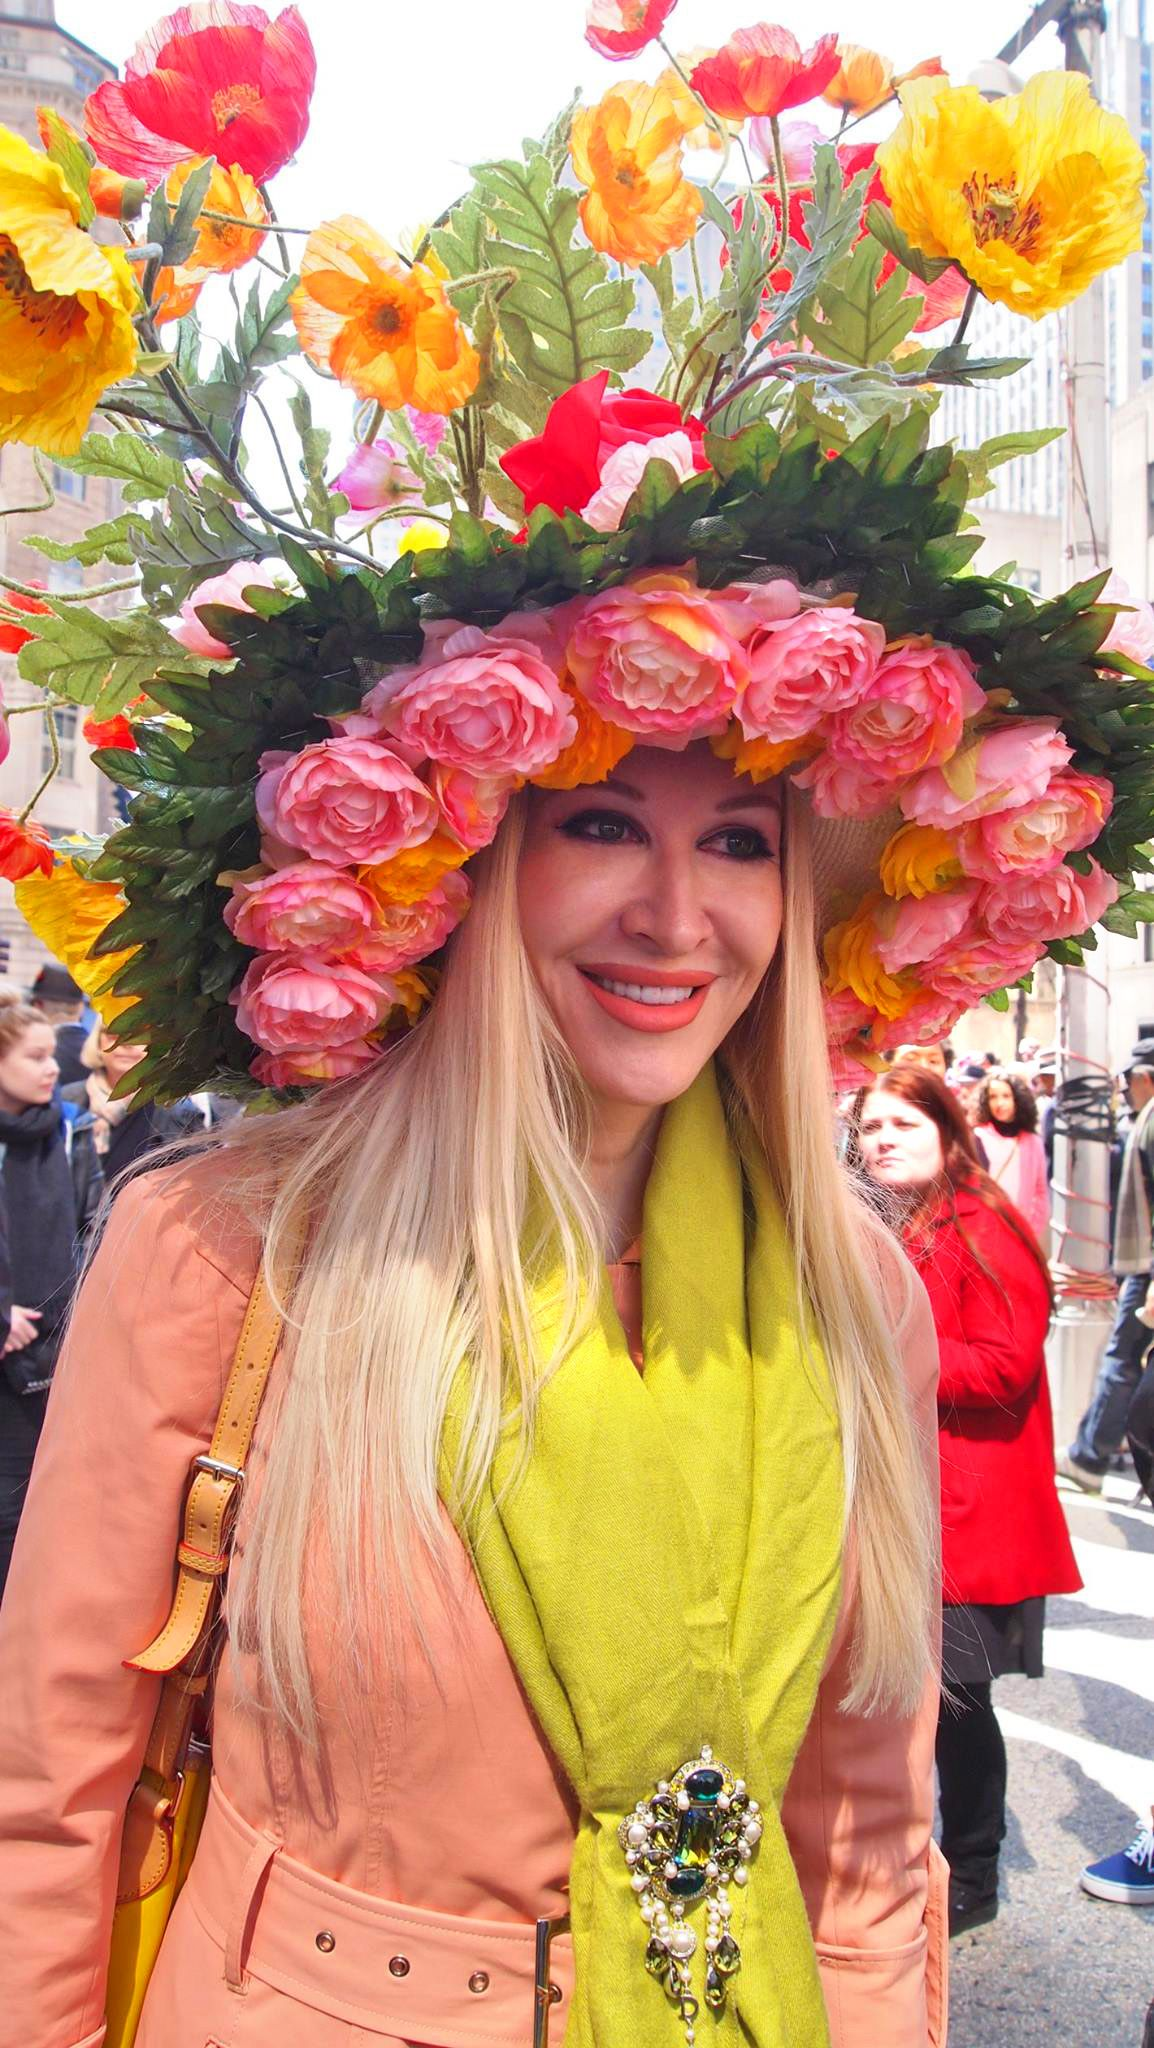 10dab95c931 At the New York City Easter Parade   easterparade   easterbonnet   hat    LifeIsCake